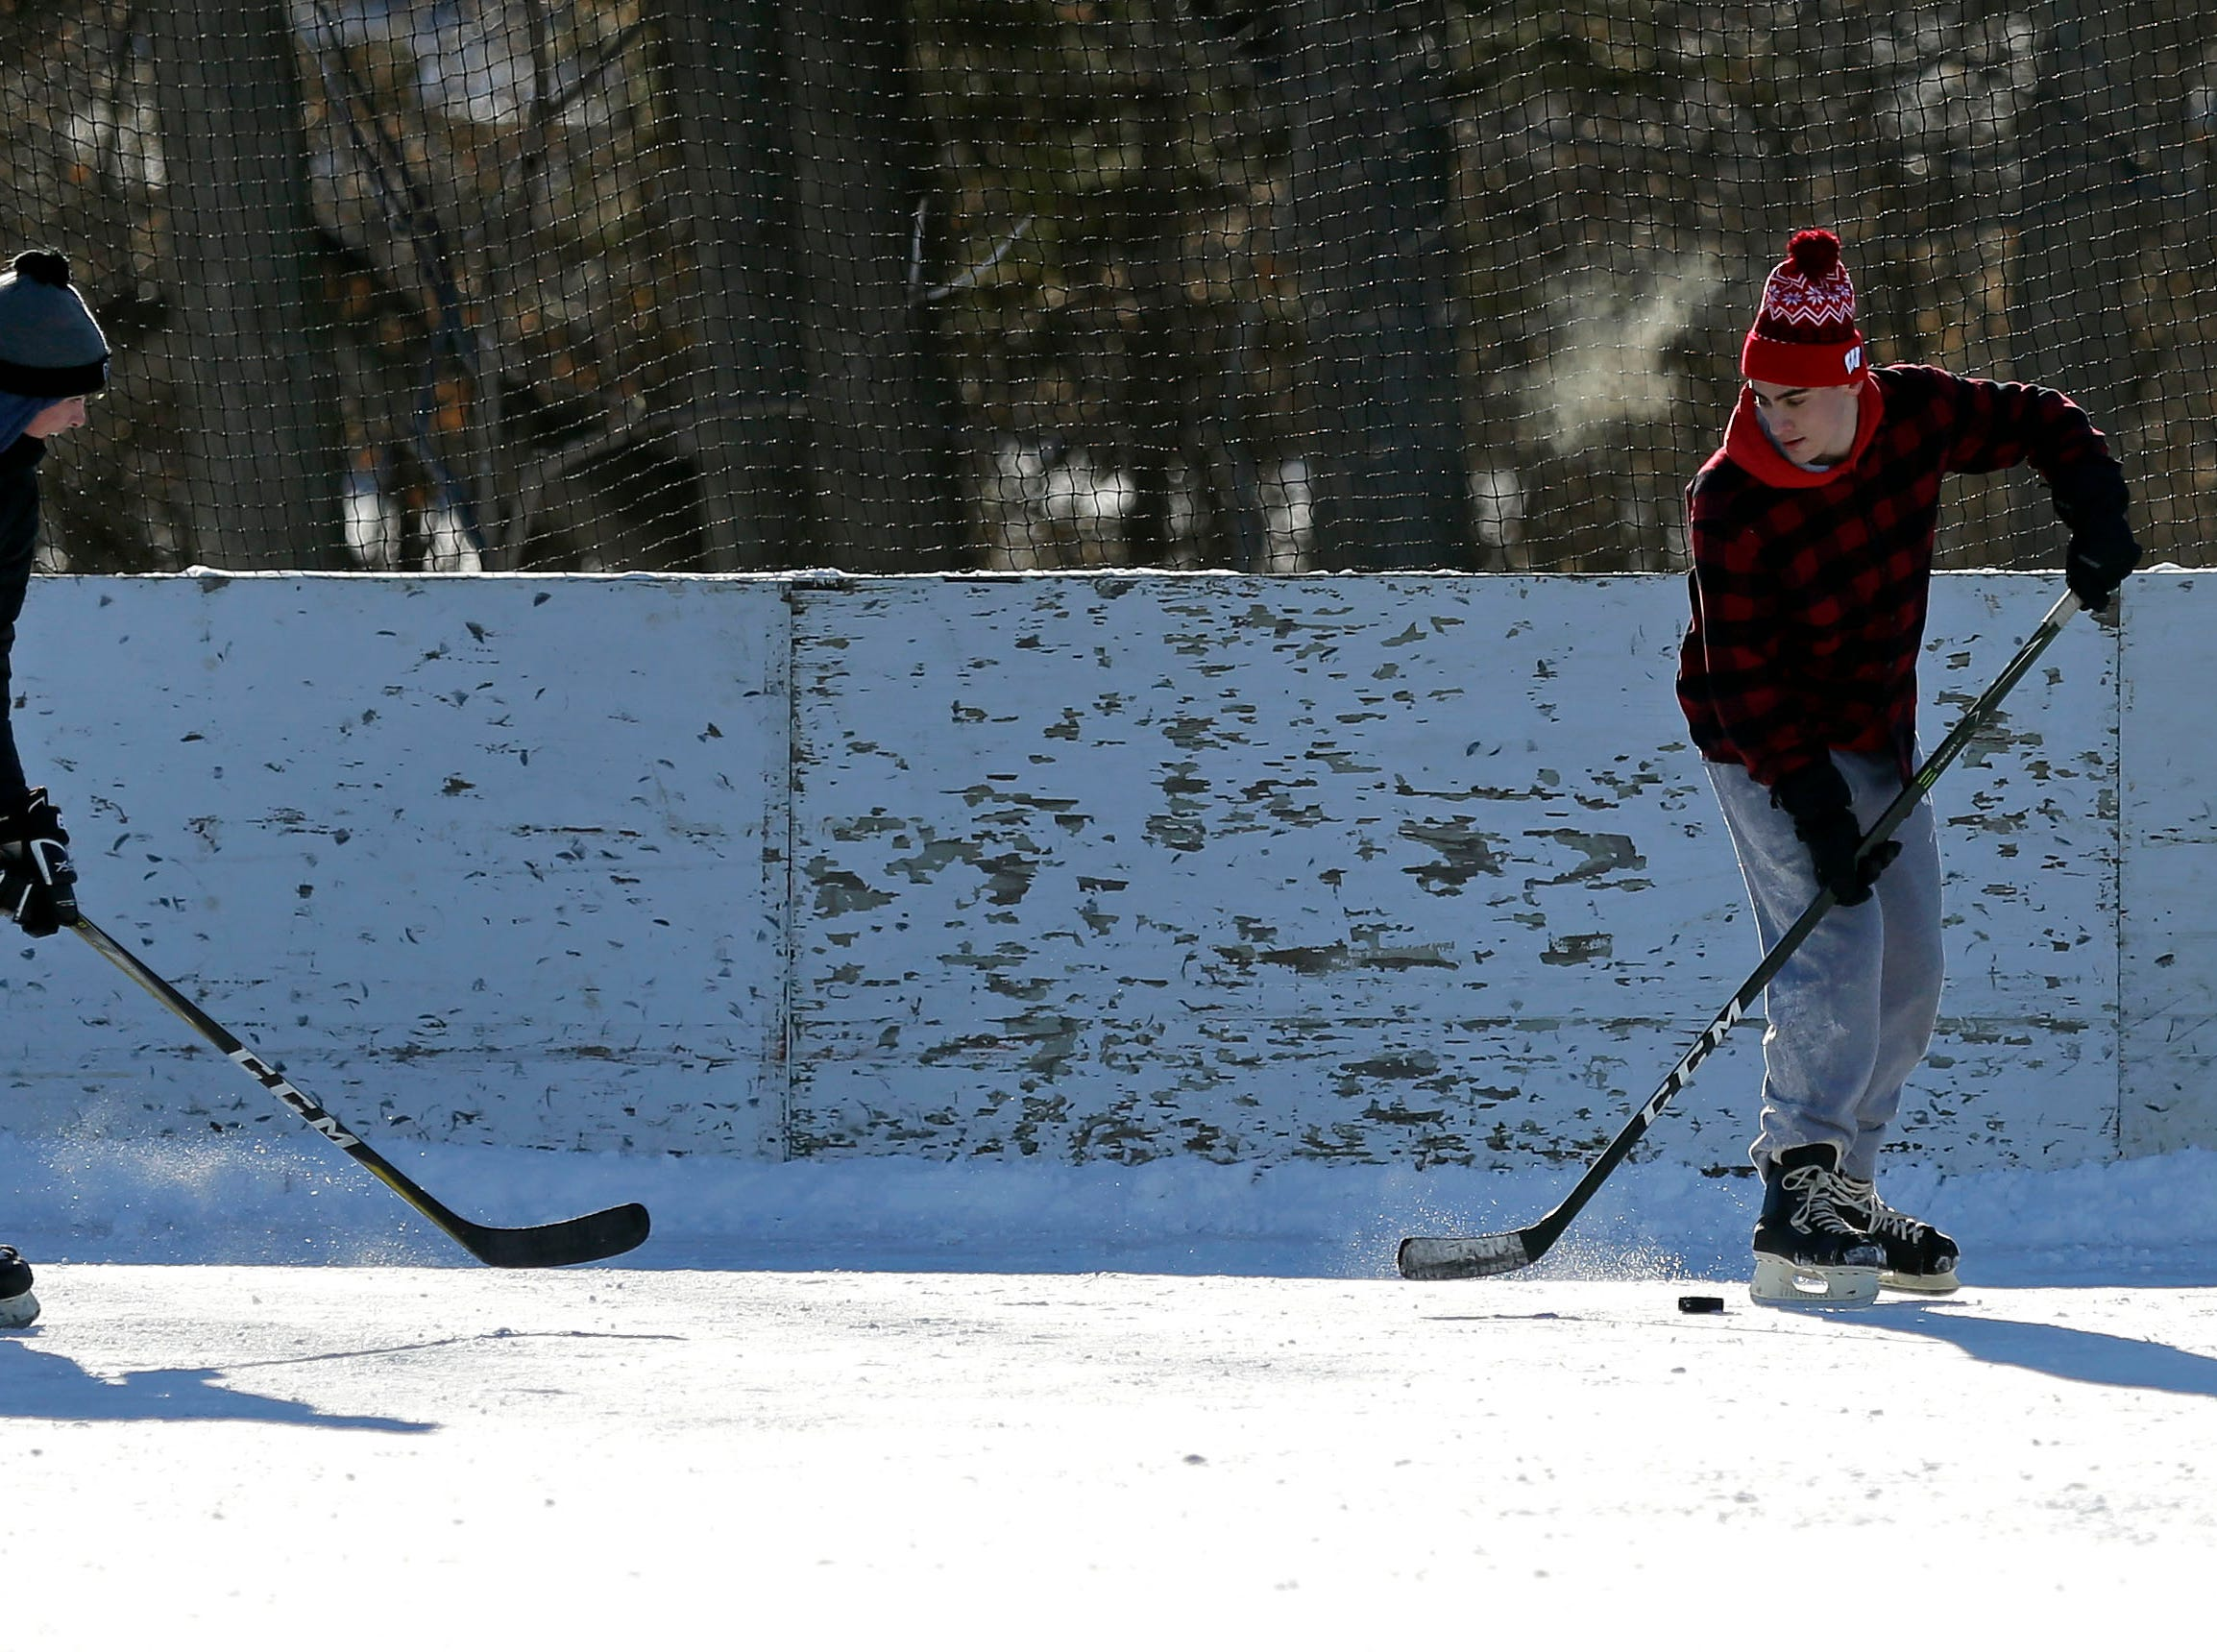 Friends from Neenah gathered for a frigid hockey game Sunday, January 20, 2019, at Pierce Park in Appleton, Wis.